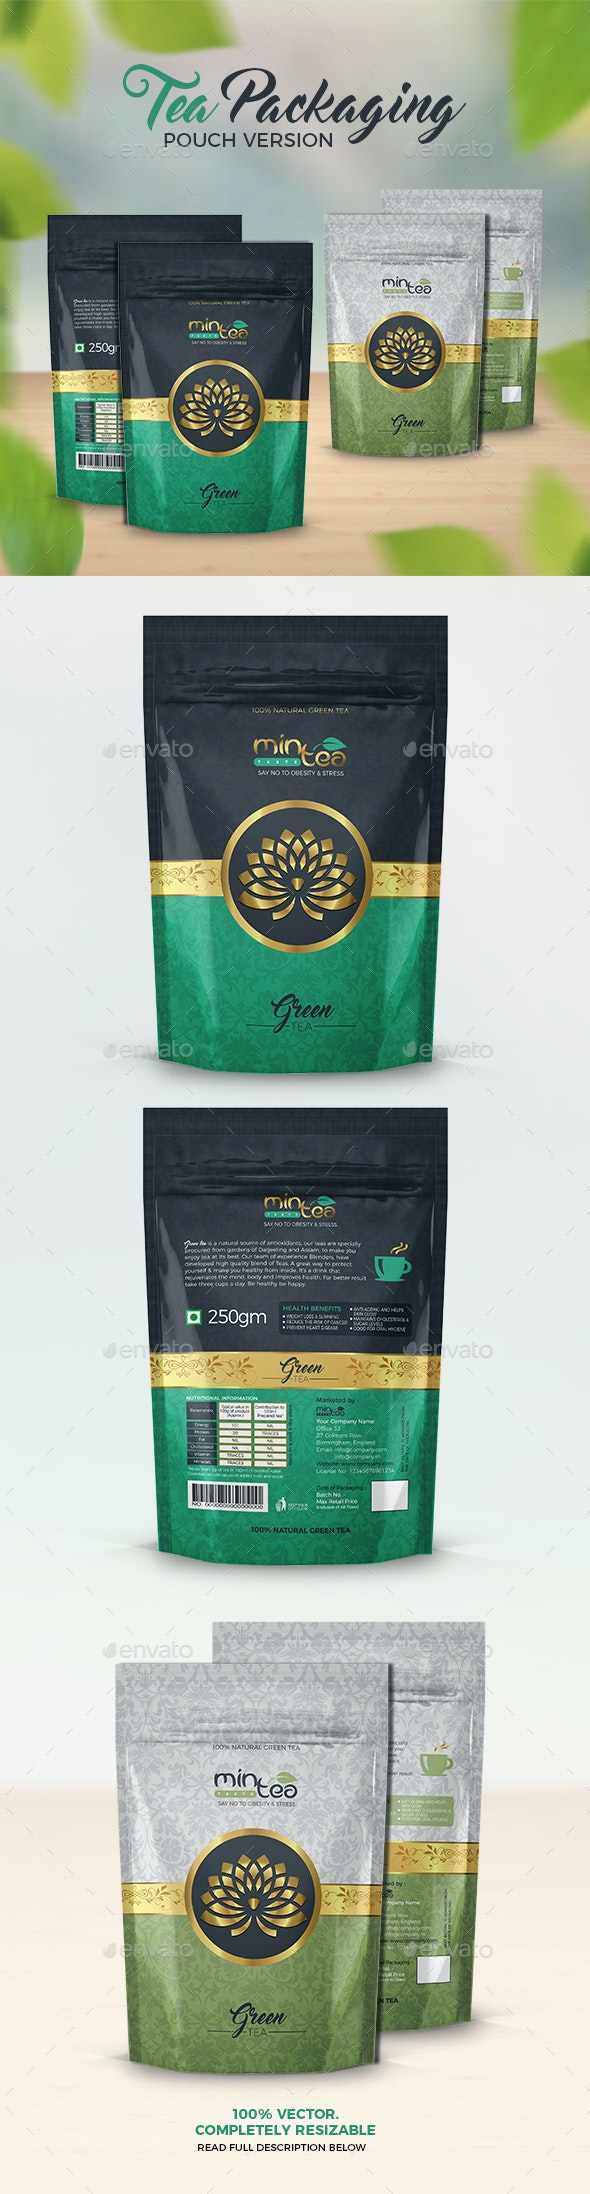 Tea Packaging (Pouch Version)